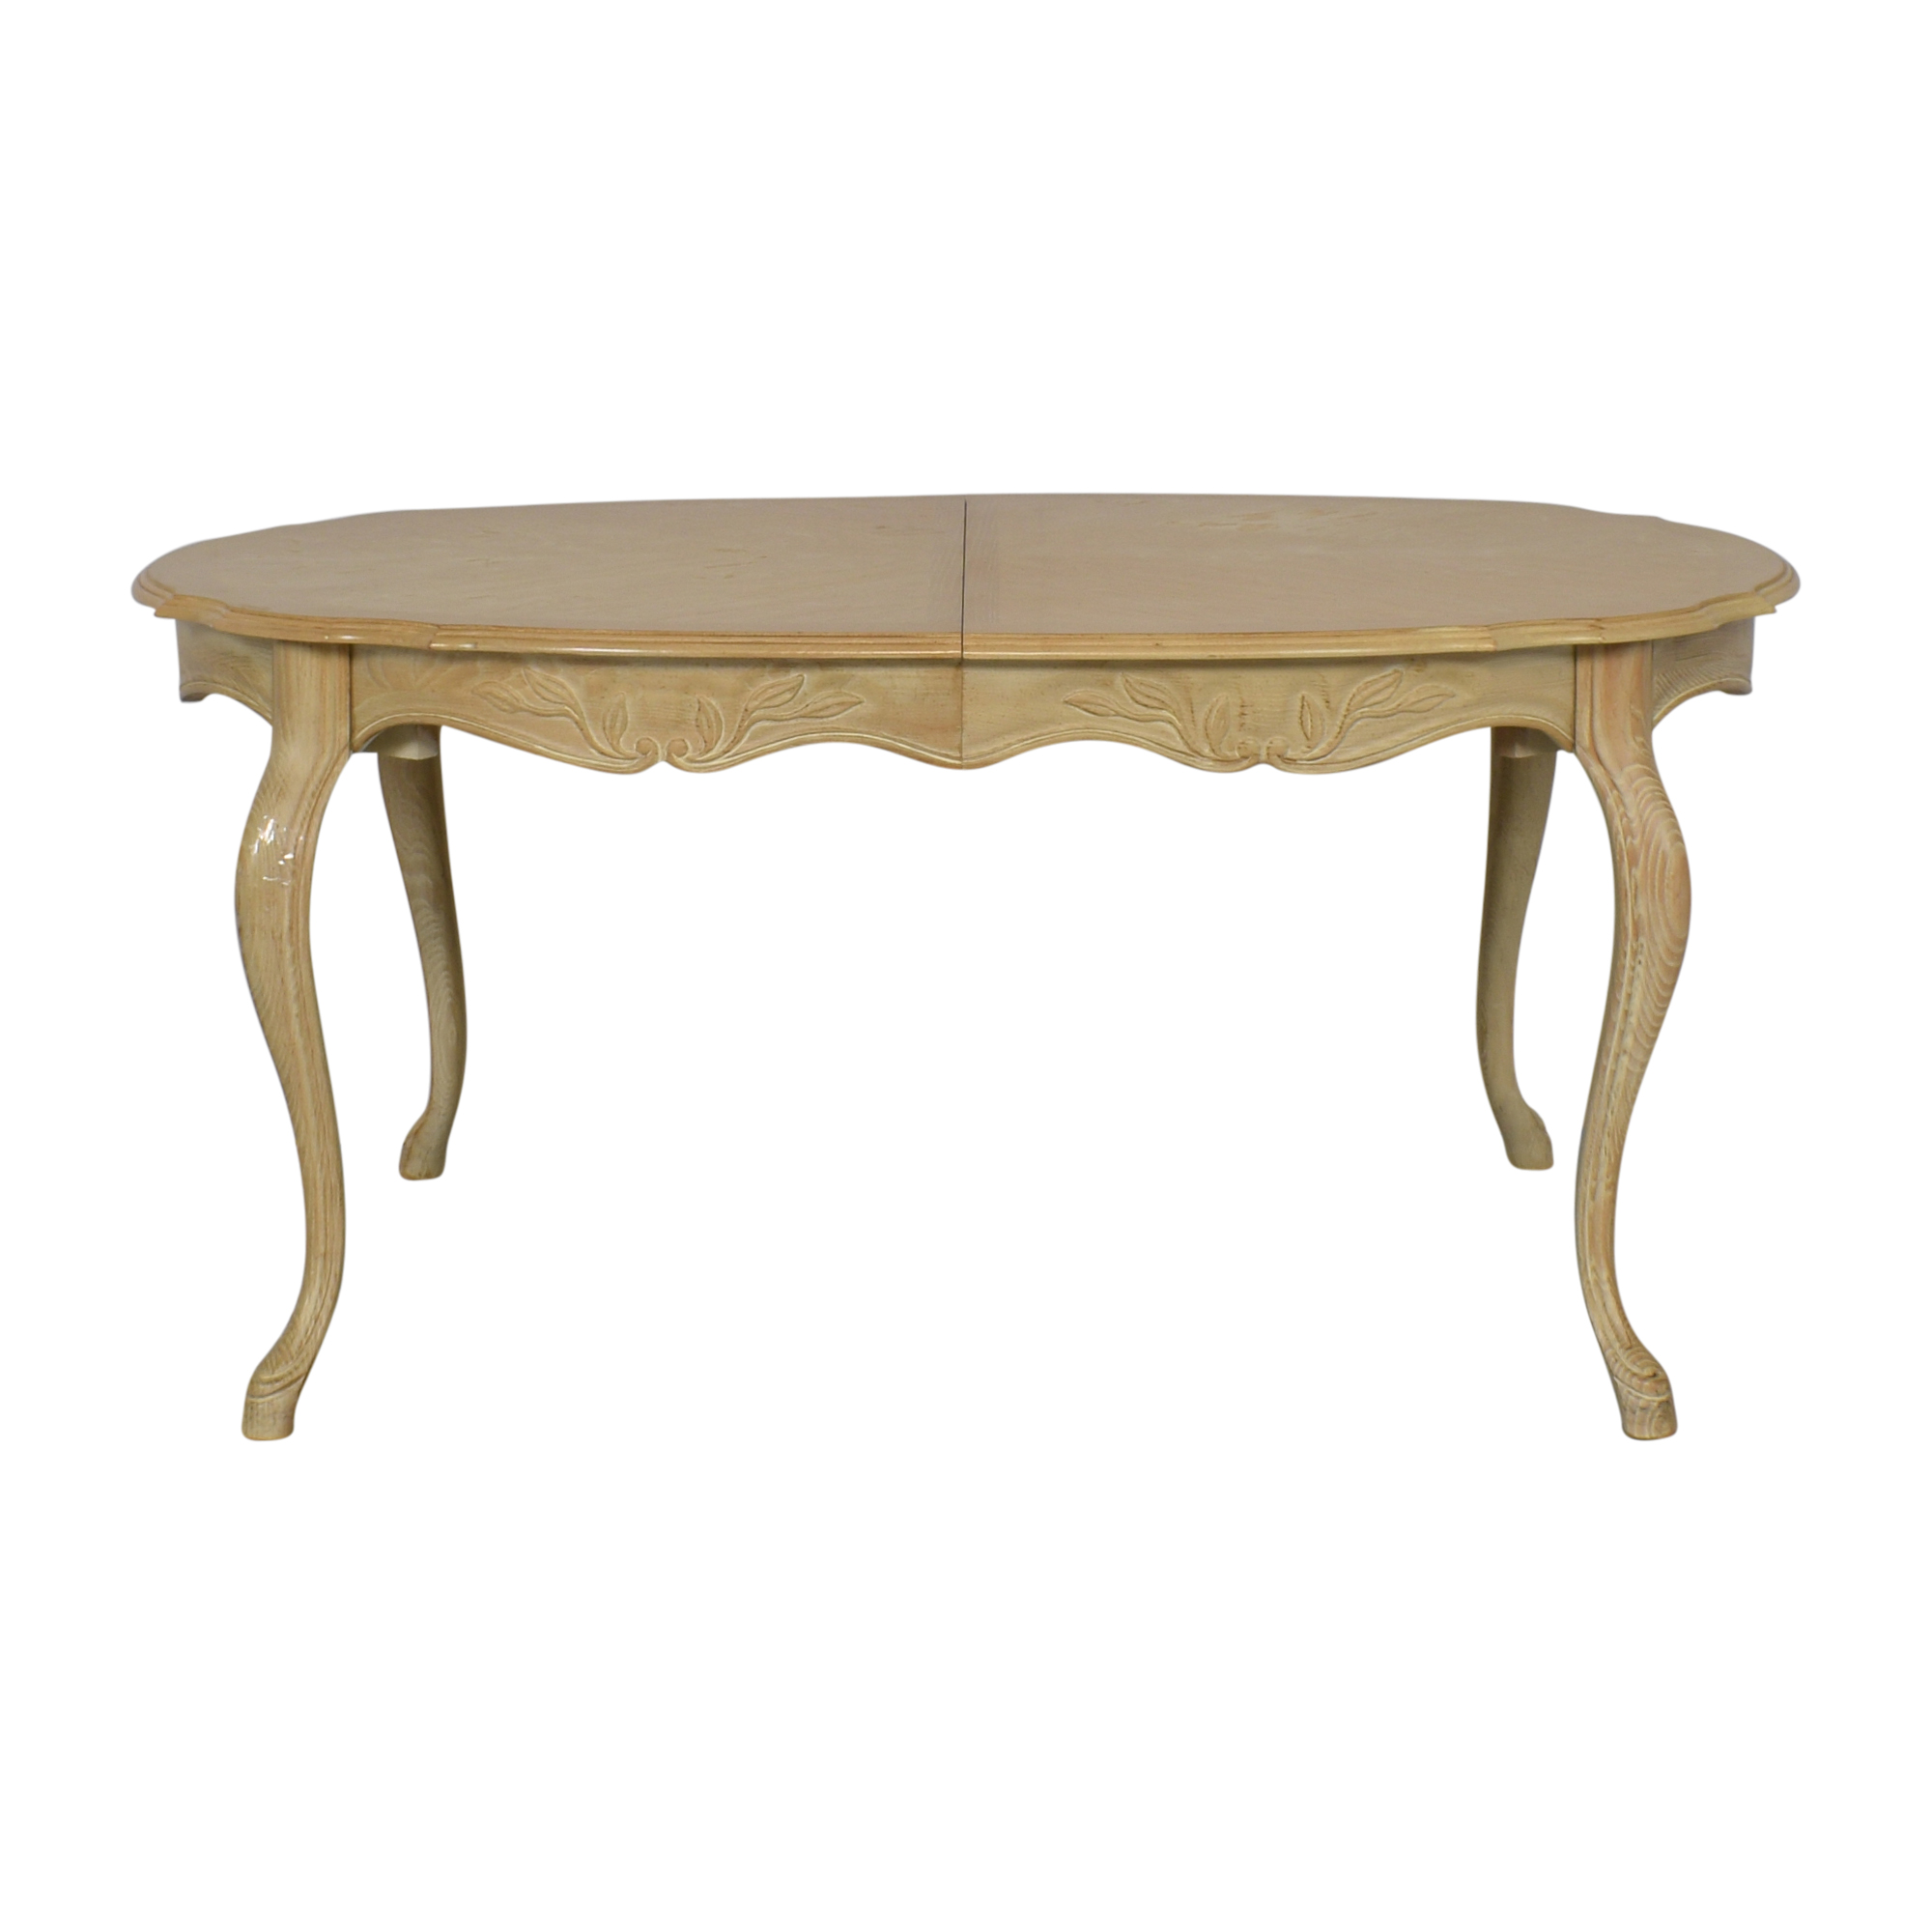 Drexel Heritage Dining Table / Dinner Tables